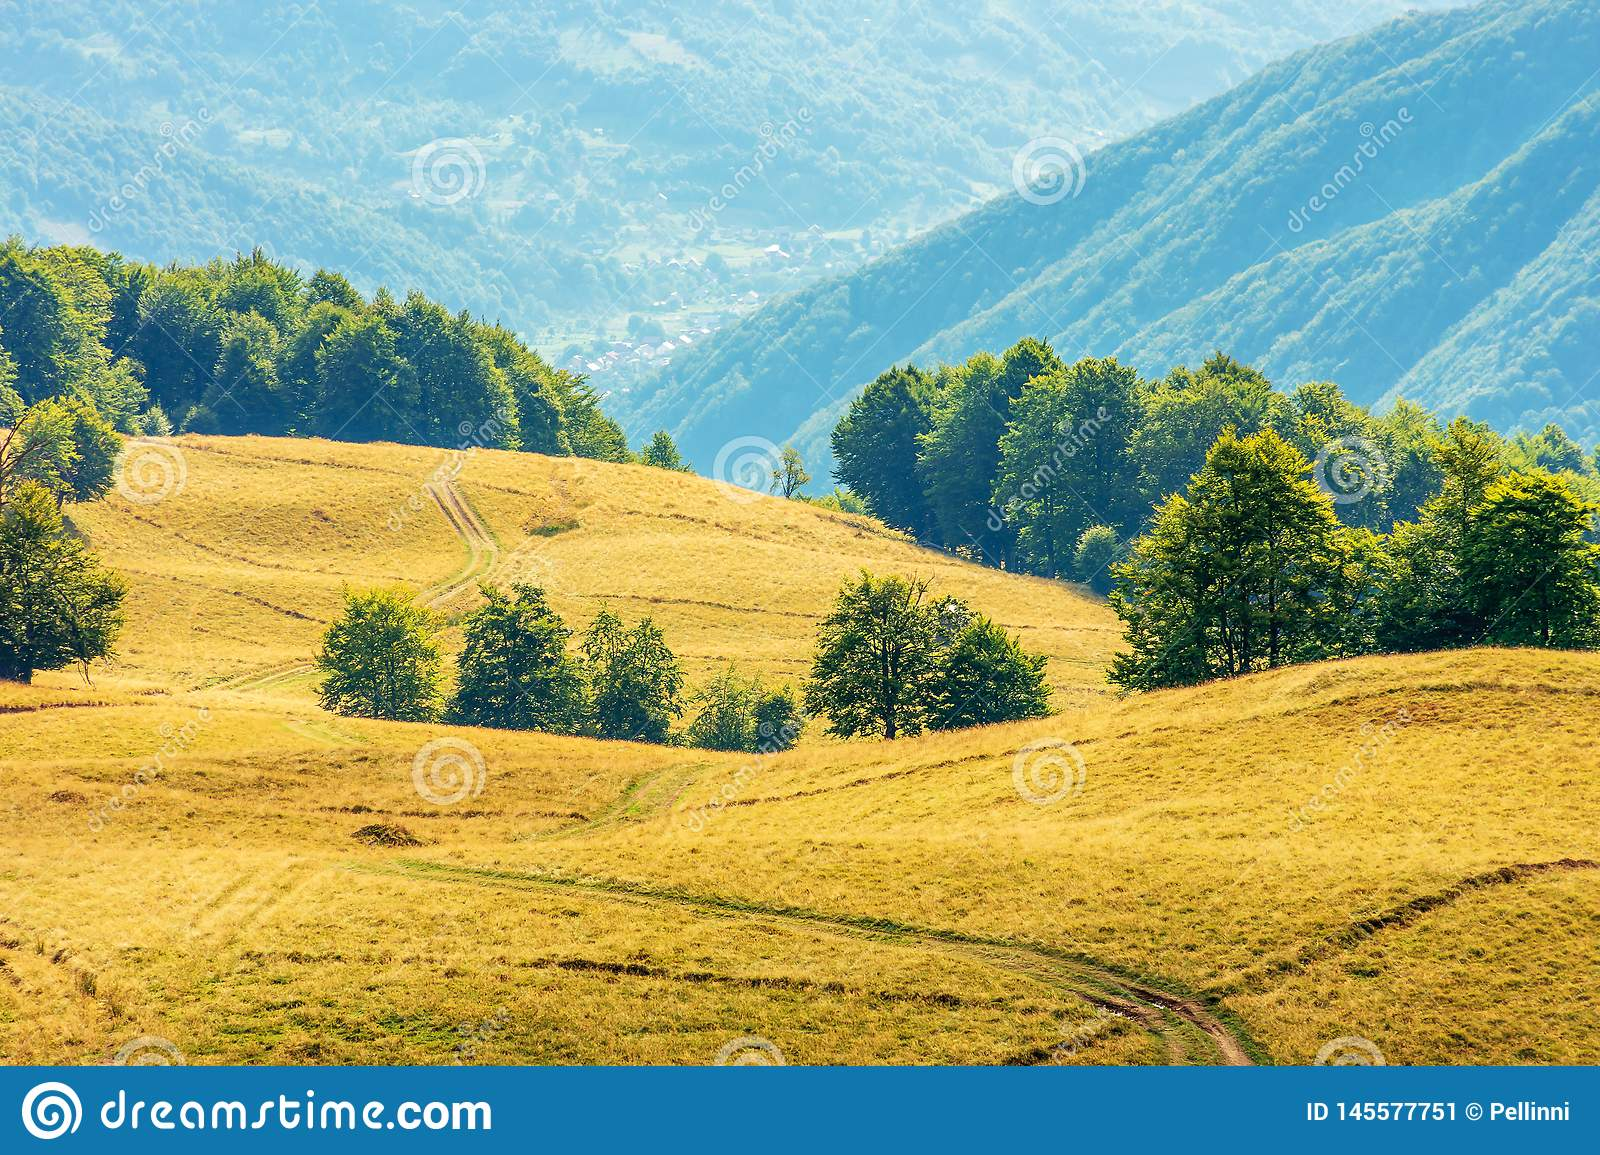 Beautiful countryside scenery in late summer